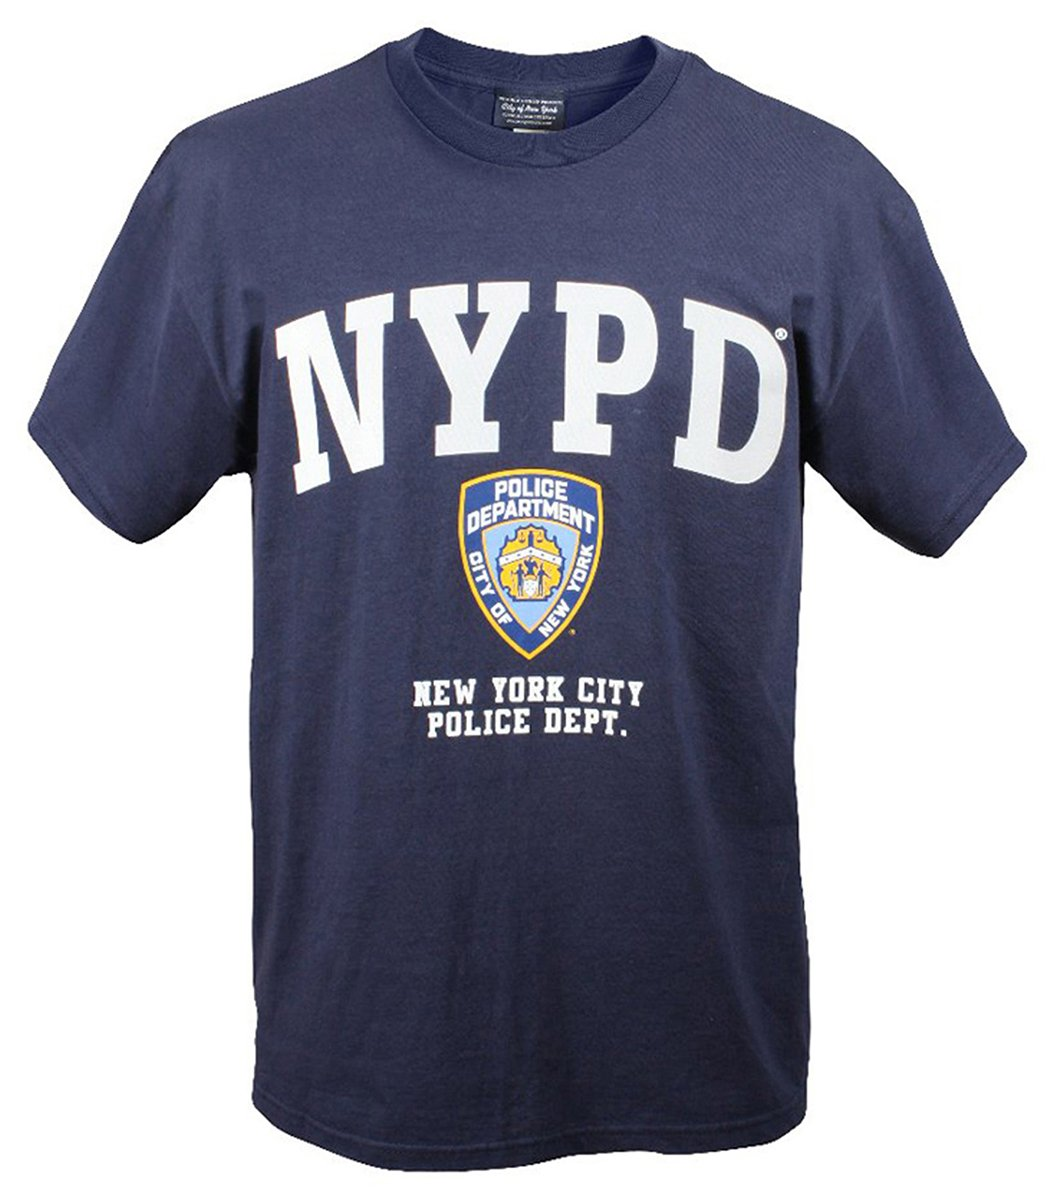 NYPD Officially Licensed T-Shirt RSR Group Inc